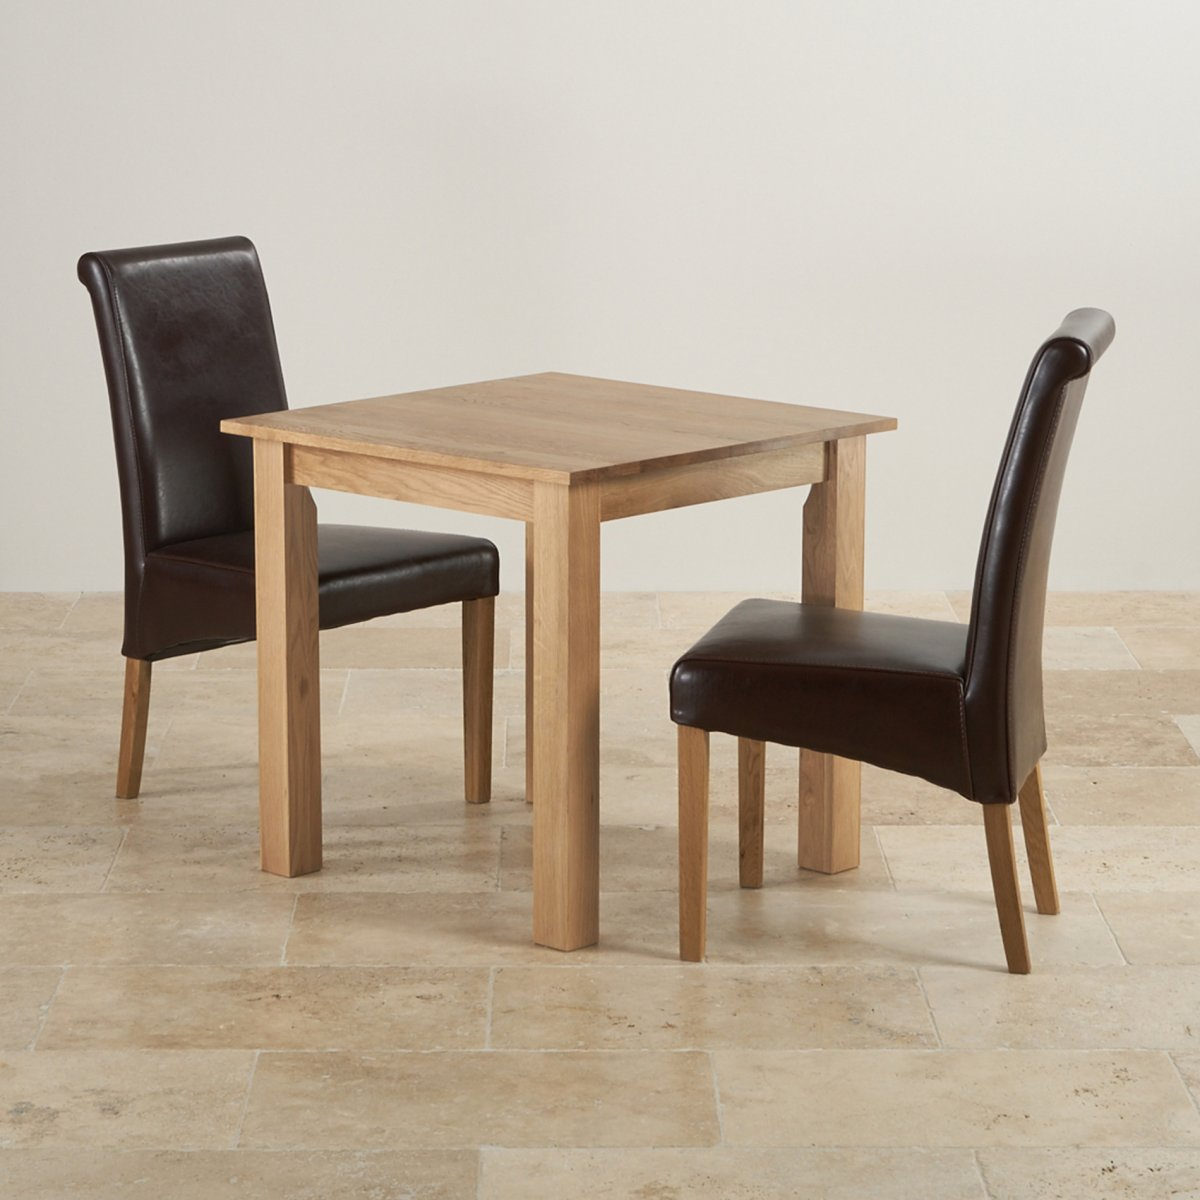 Hudson Dining Set in Natural Oak - Table + 2 Leather Chairs